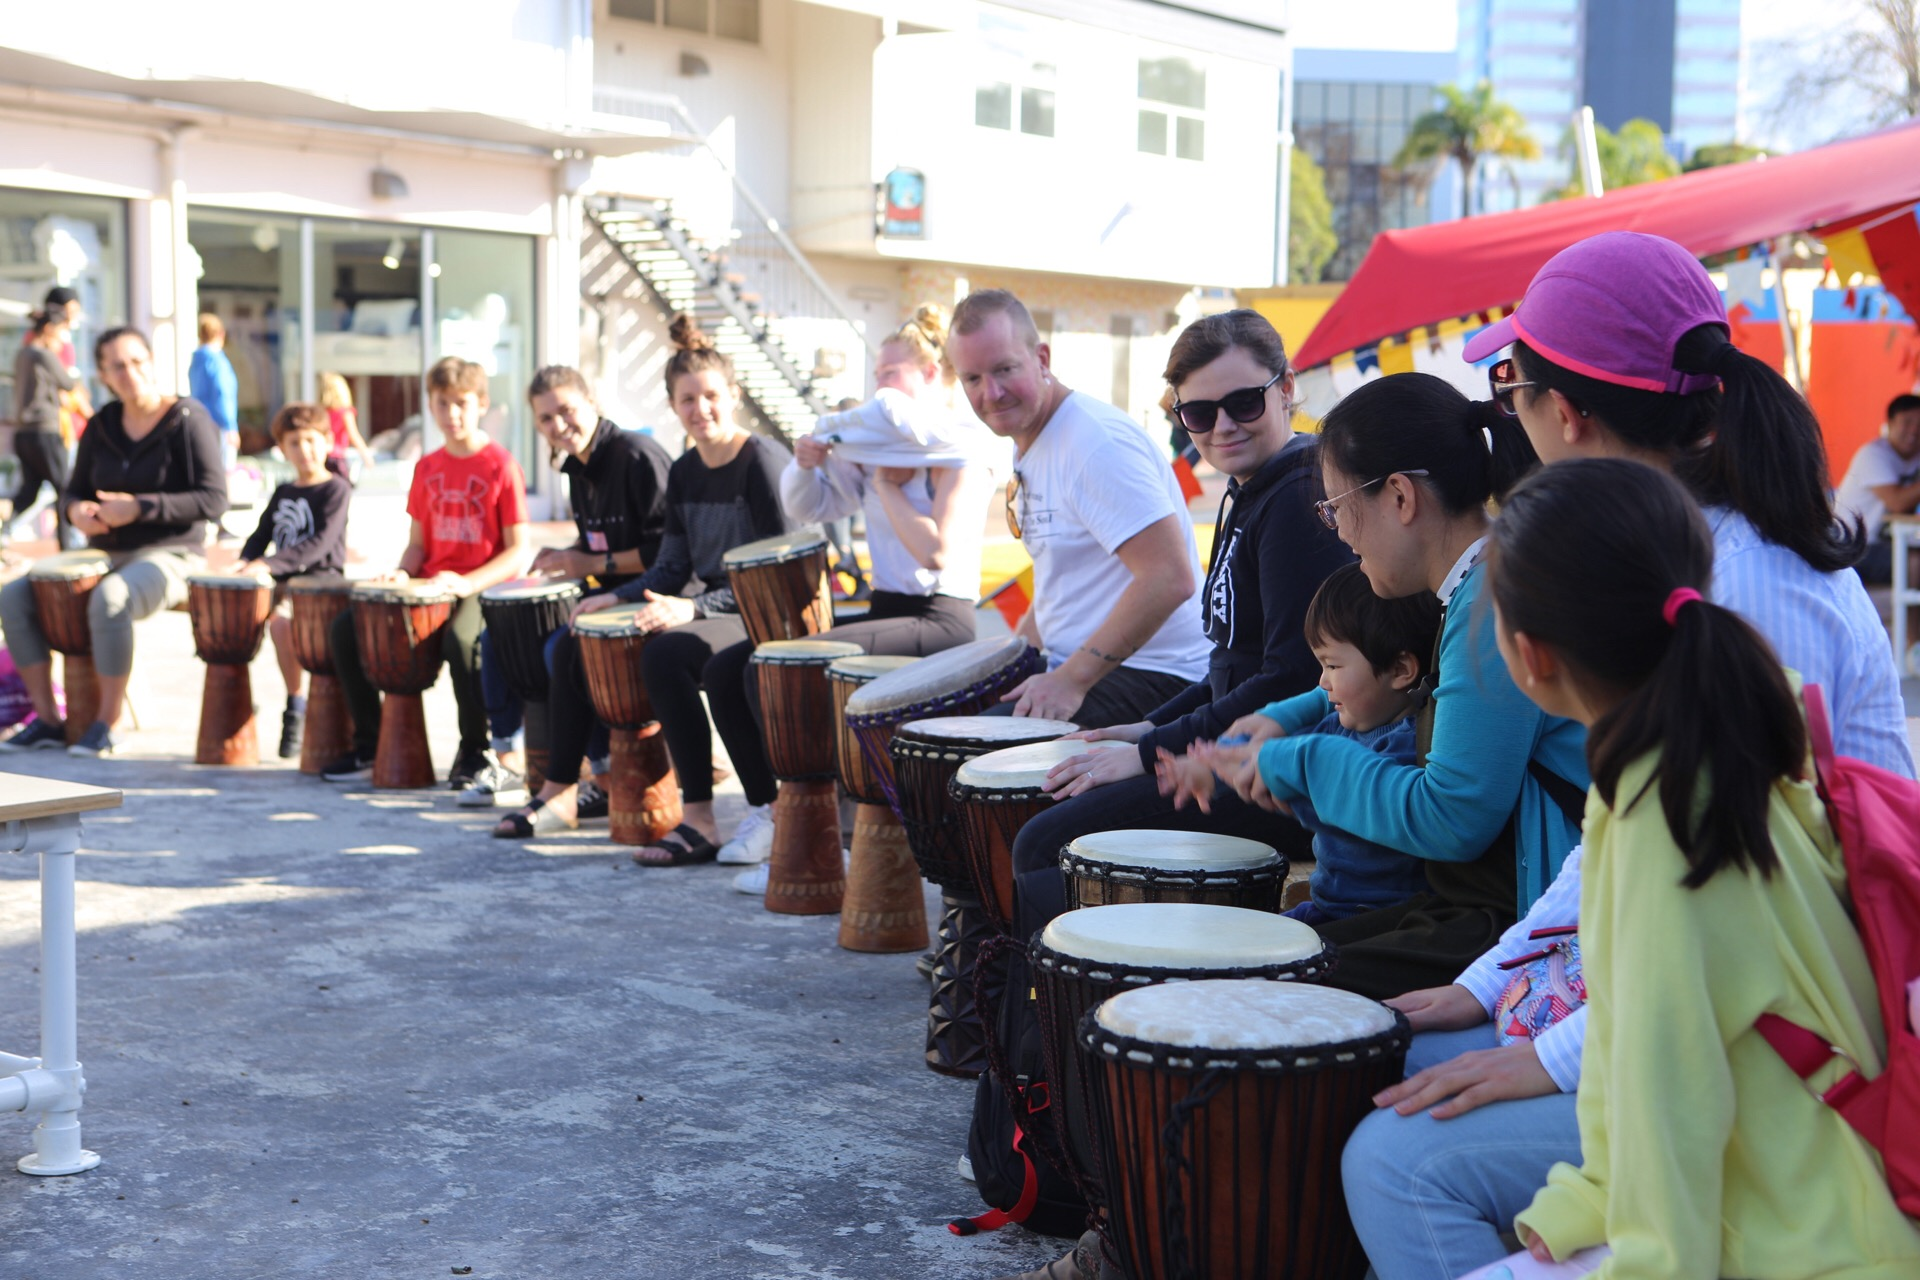 Chewy Wilson works nearby 38 Hurstmere at  PHAB . As well as his work alongside the community, he also runs  Rhythm For The Soul . Chewy had us drumming, dancing, playing and exploring connection through drumming together on a sunny afternoon.